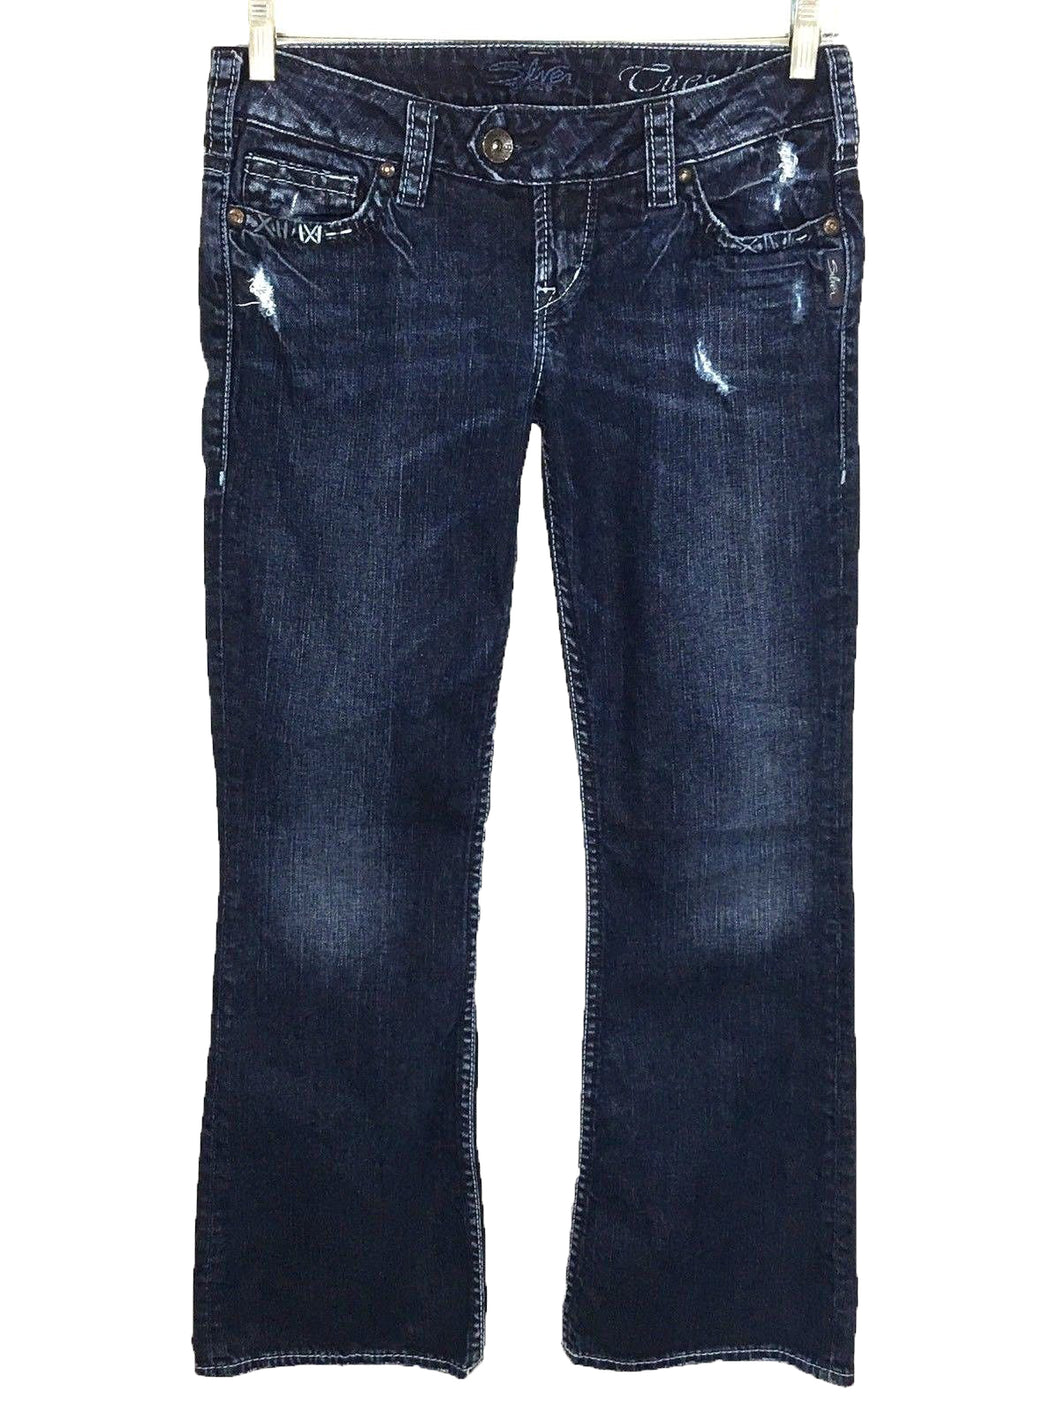 Silver Jeans Tuesday Dark Wash Distressed Stretch Womens 27 x 29 Actual 29x30 - FunkyCrap Boutique